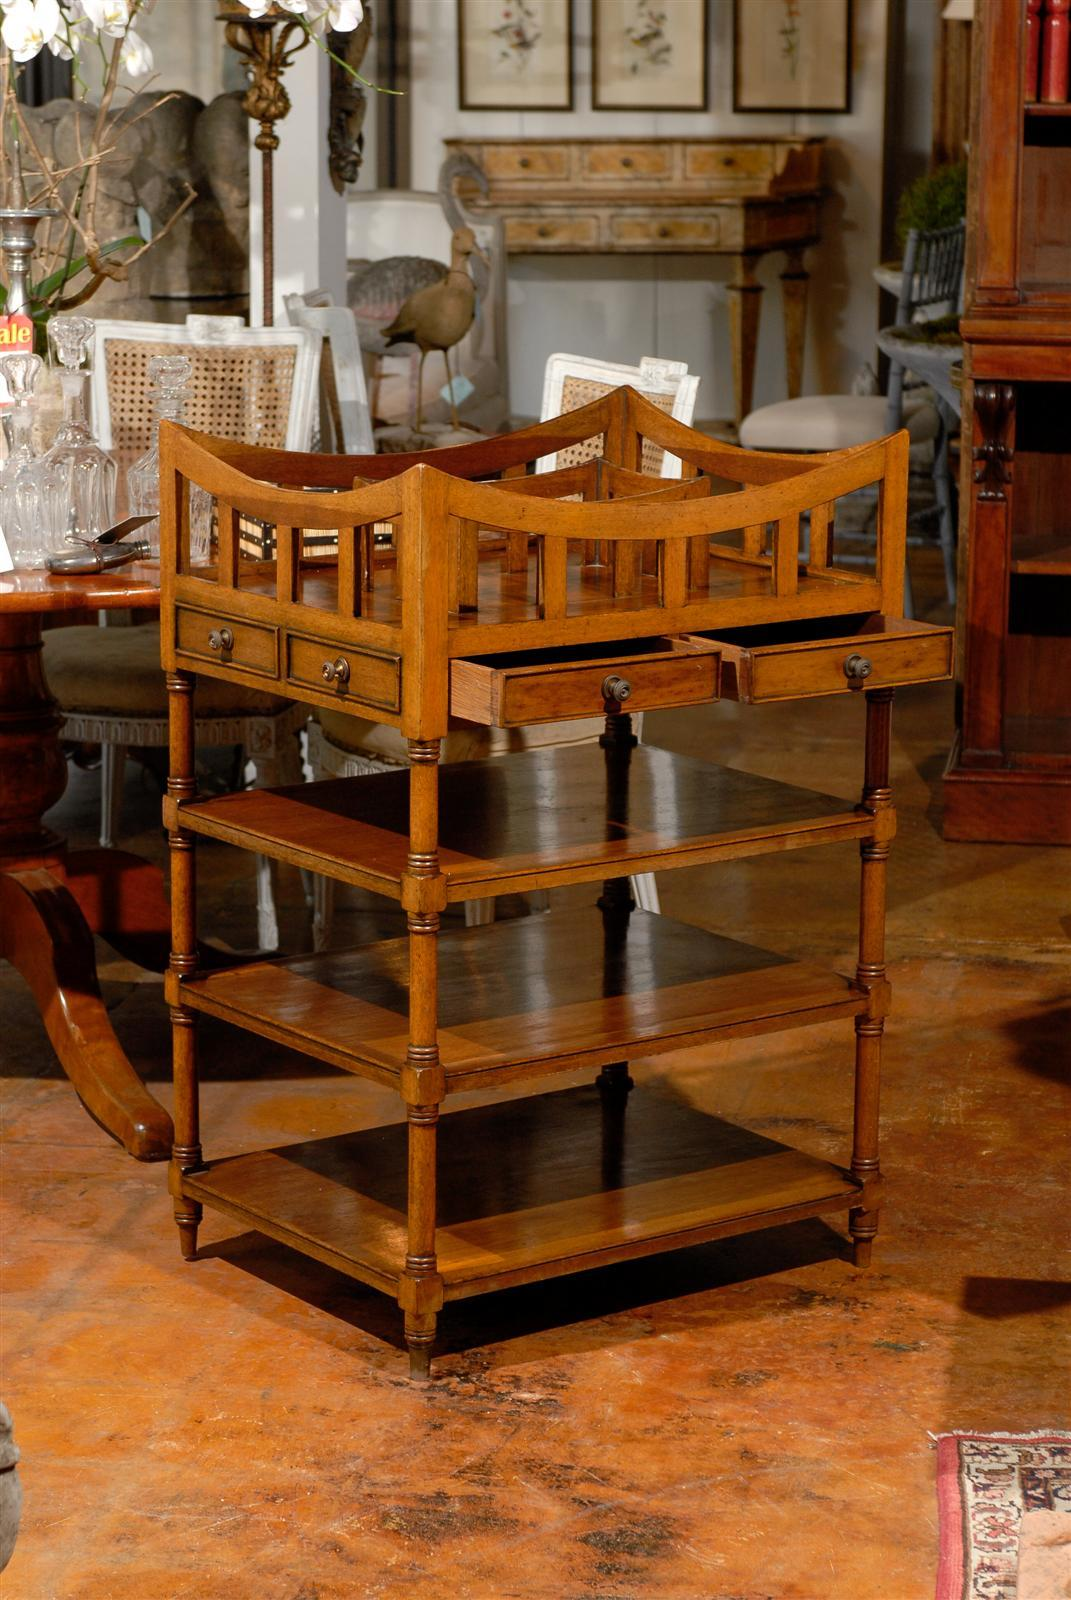 An Italian walnut étagère with pierced gallery and two-drawers from the late 19th century. This Italian wooden tiered shelf circa 1890 features an unusual curved pierced gallery at the top, surrounding a smaller partitioned gallery. The apron